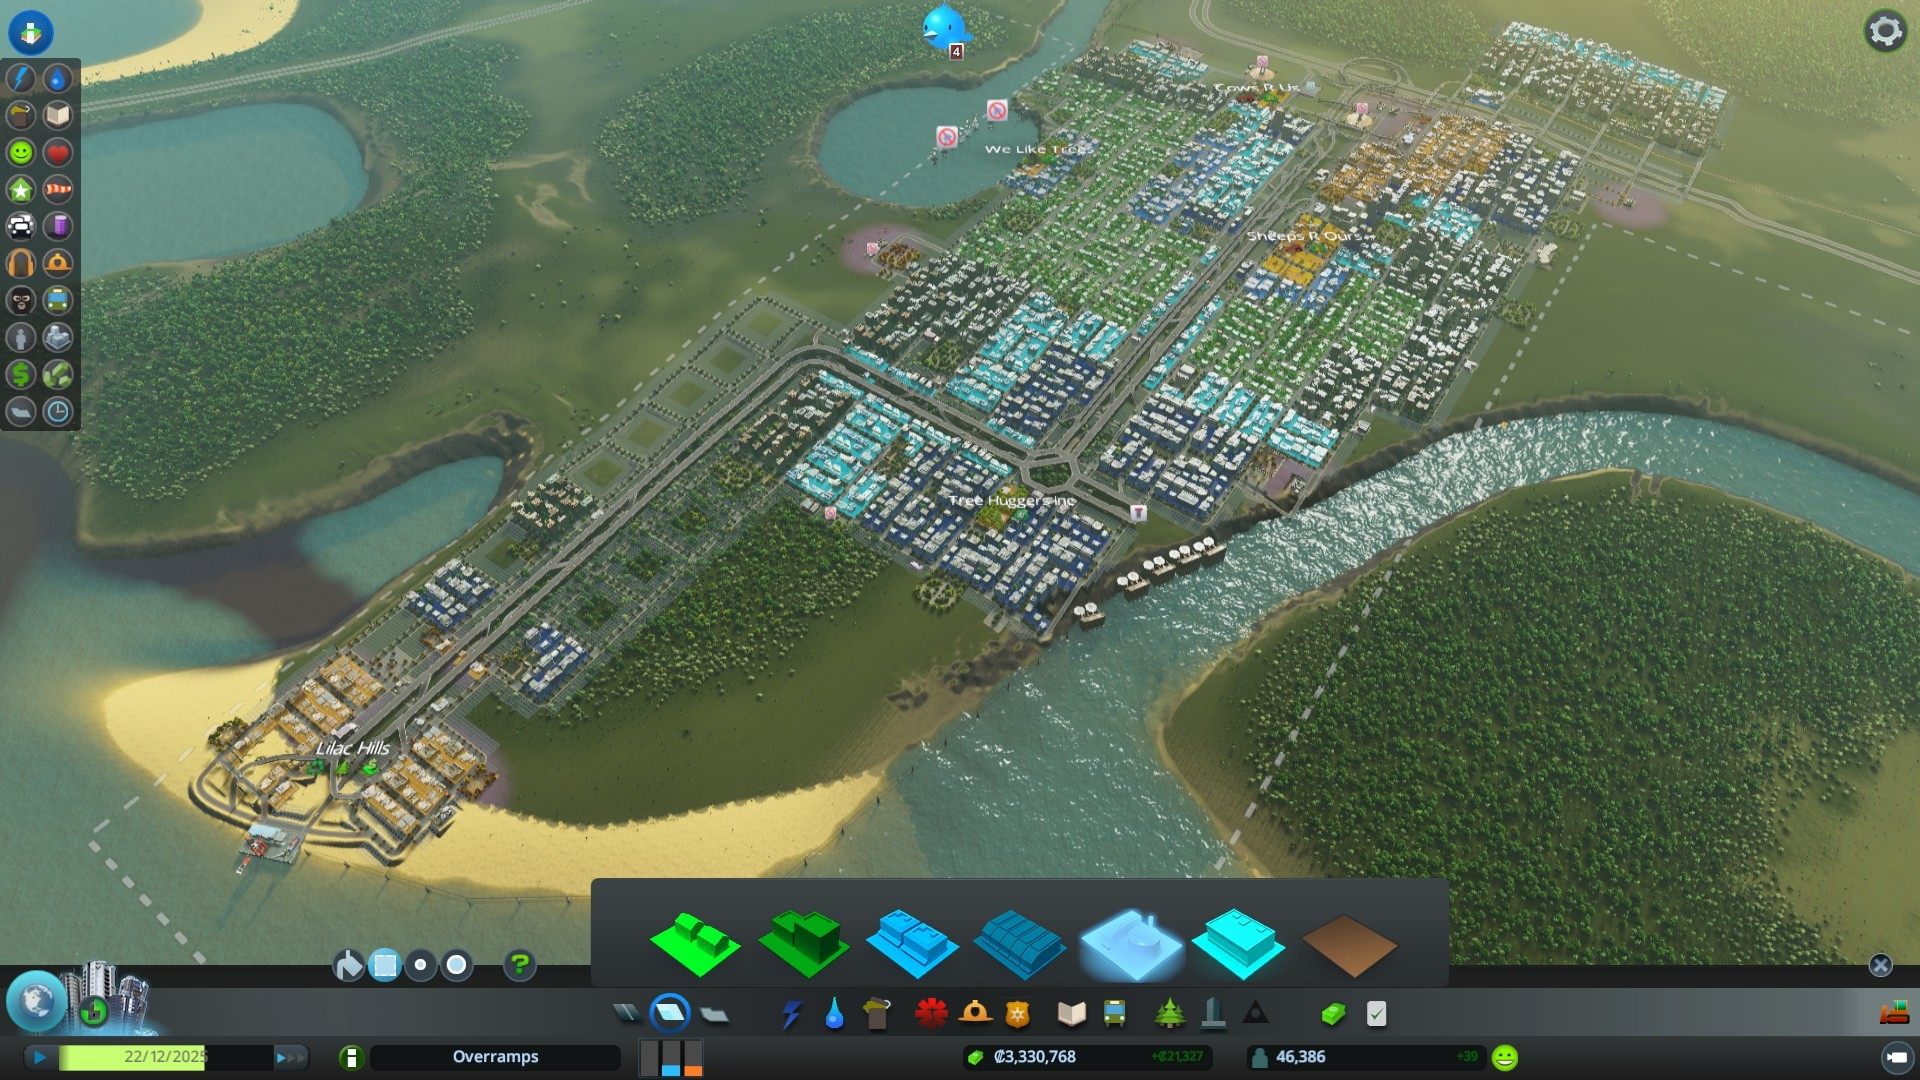 Games for cities learn more about cities skylines gumiabroncs Gallery